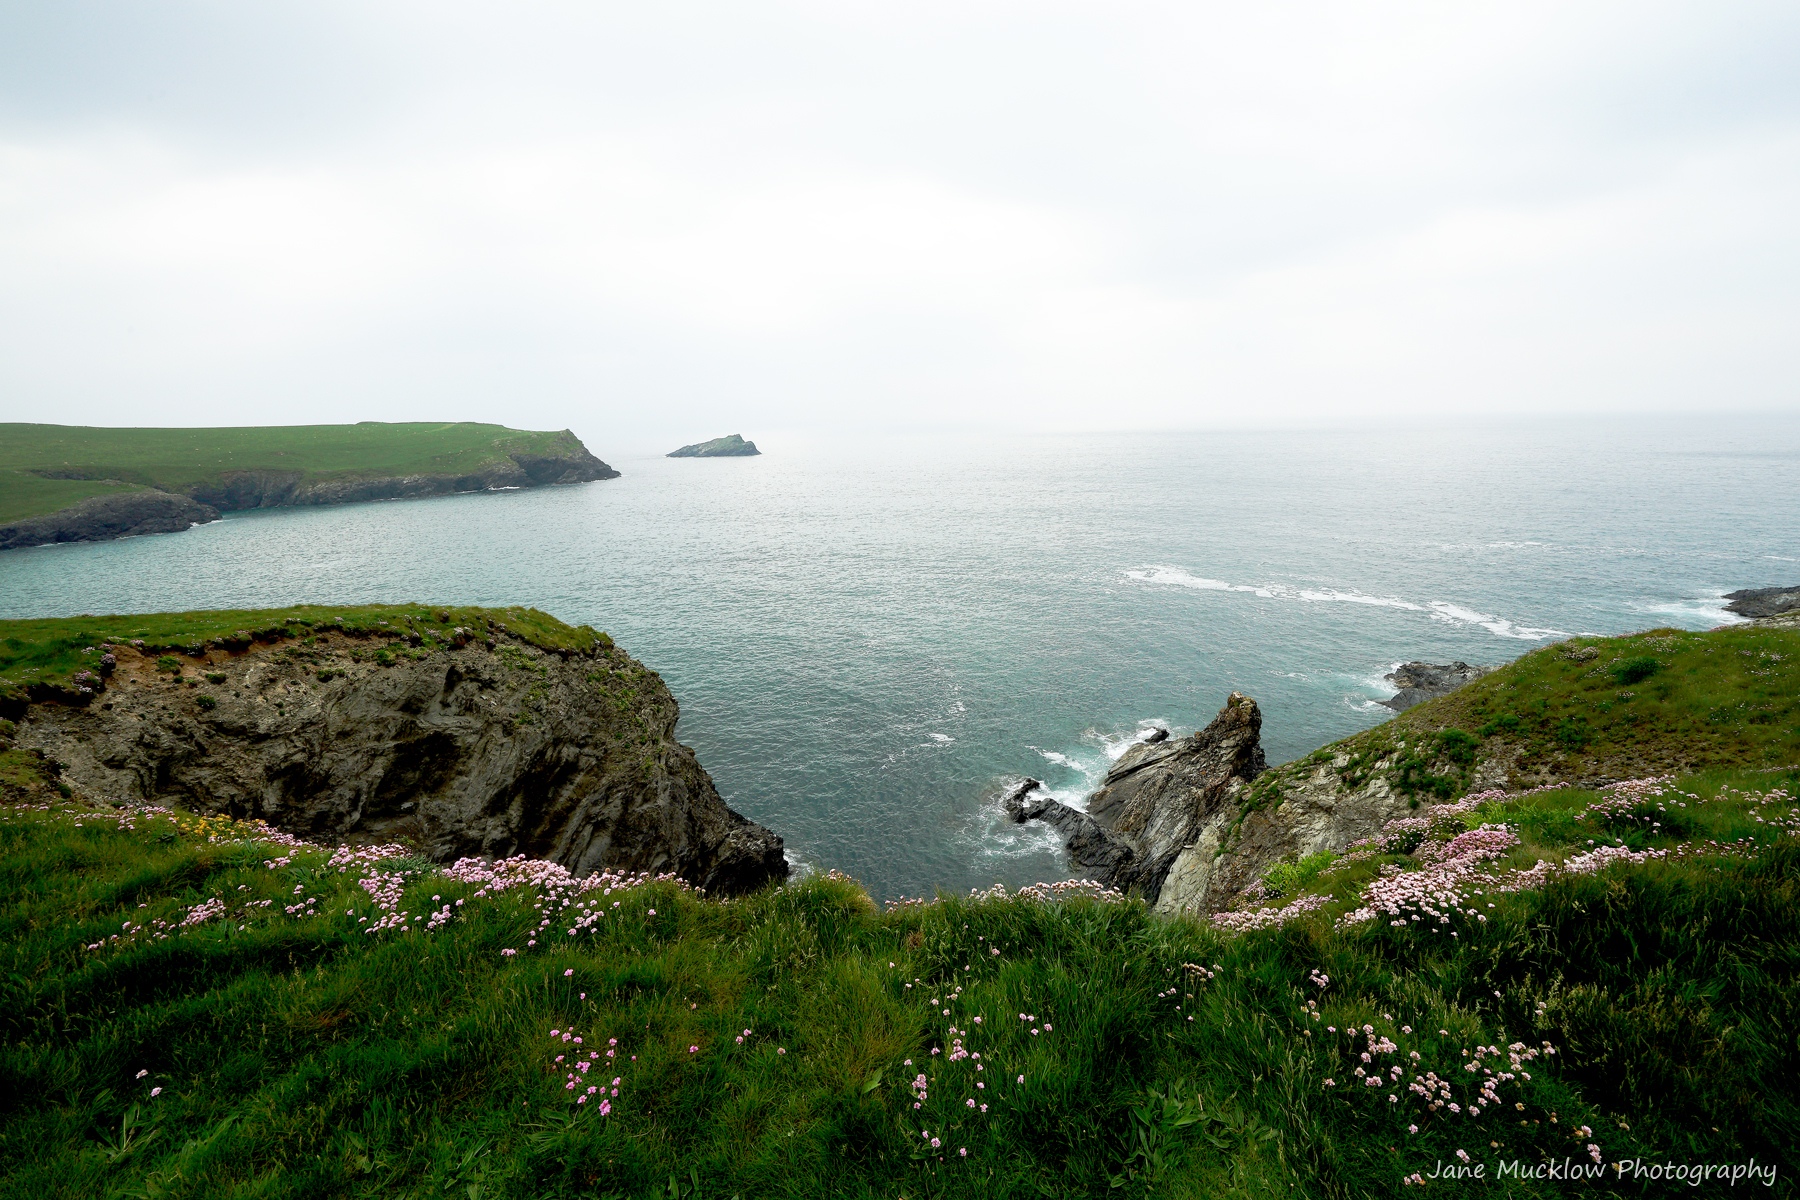 Photograph of the cliffs and sea from between Porth Joke and Crantock, Cornwall, by Jane Mucklow